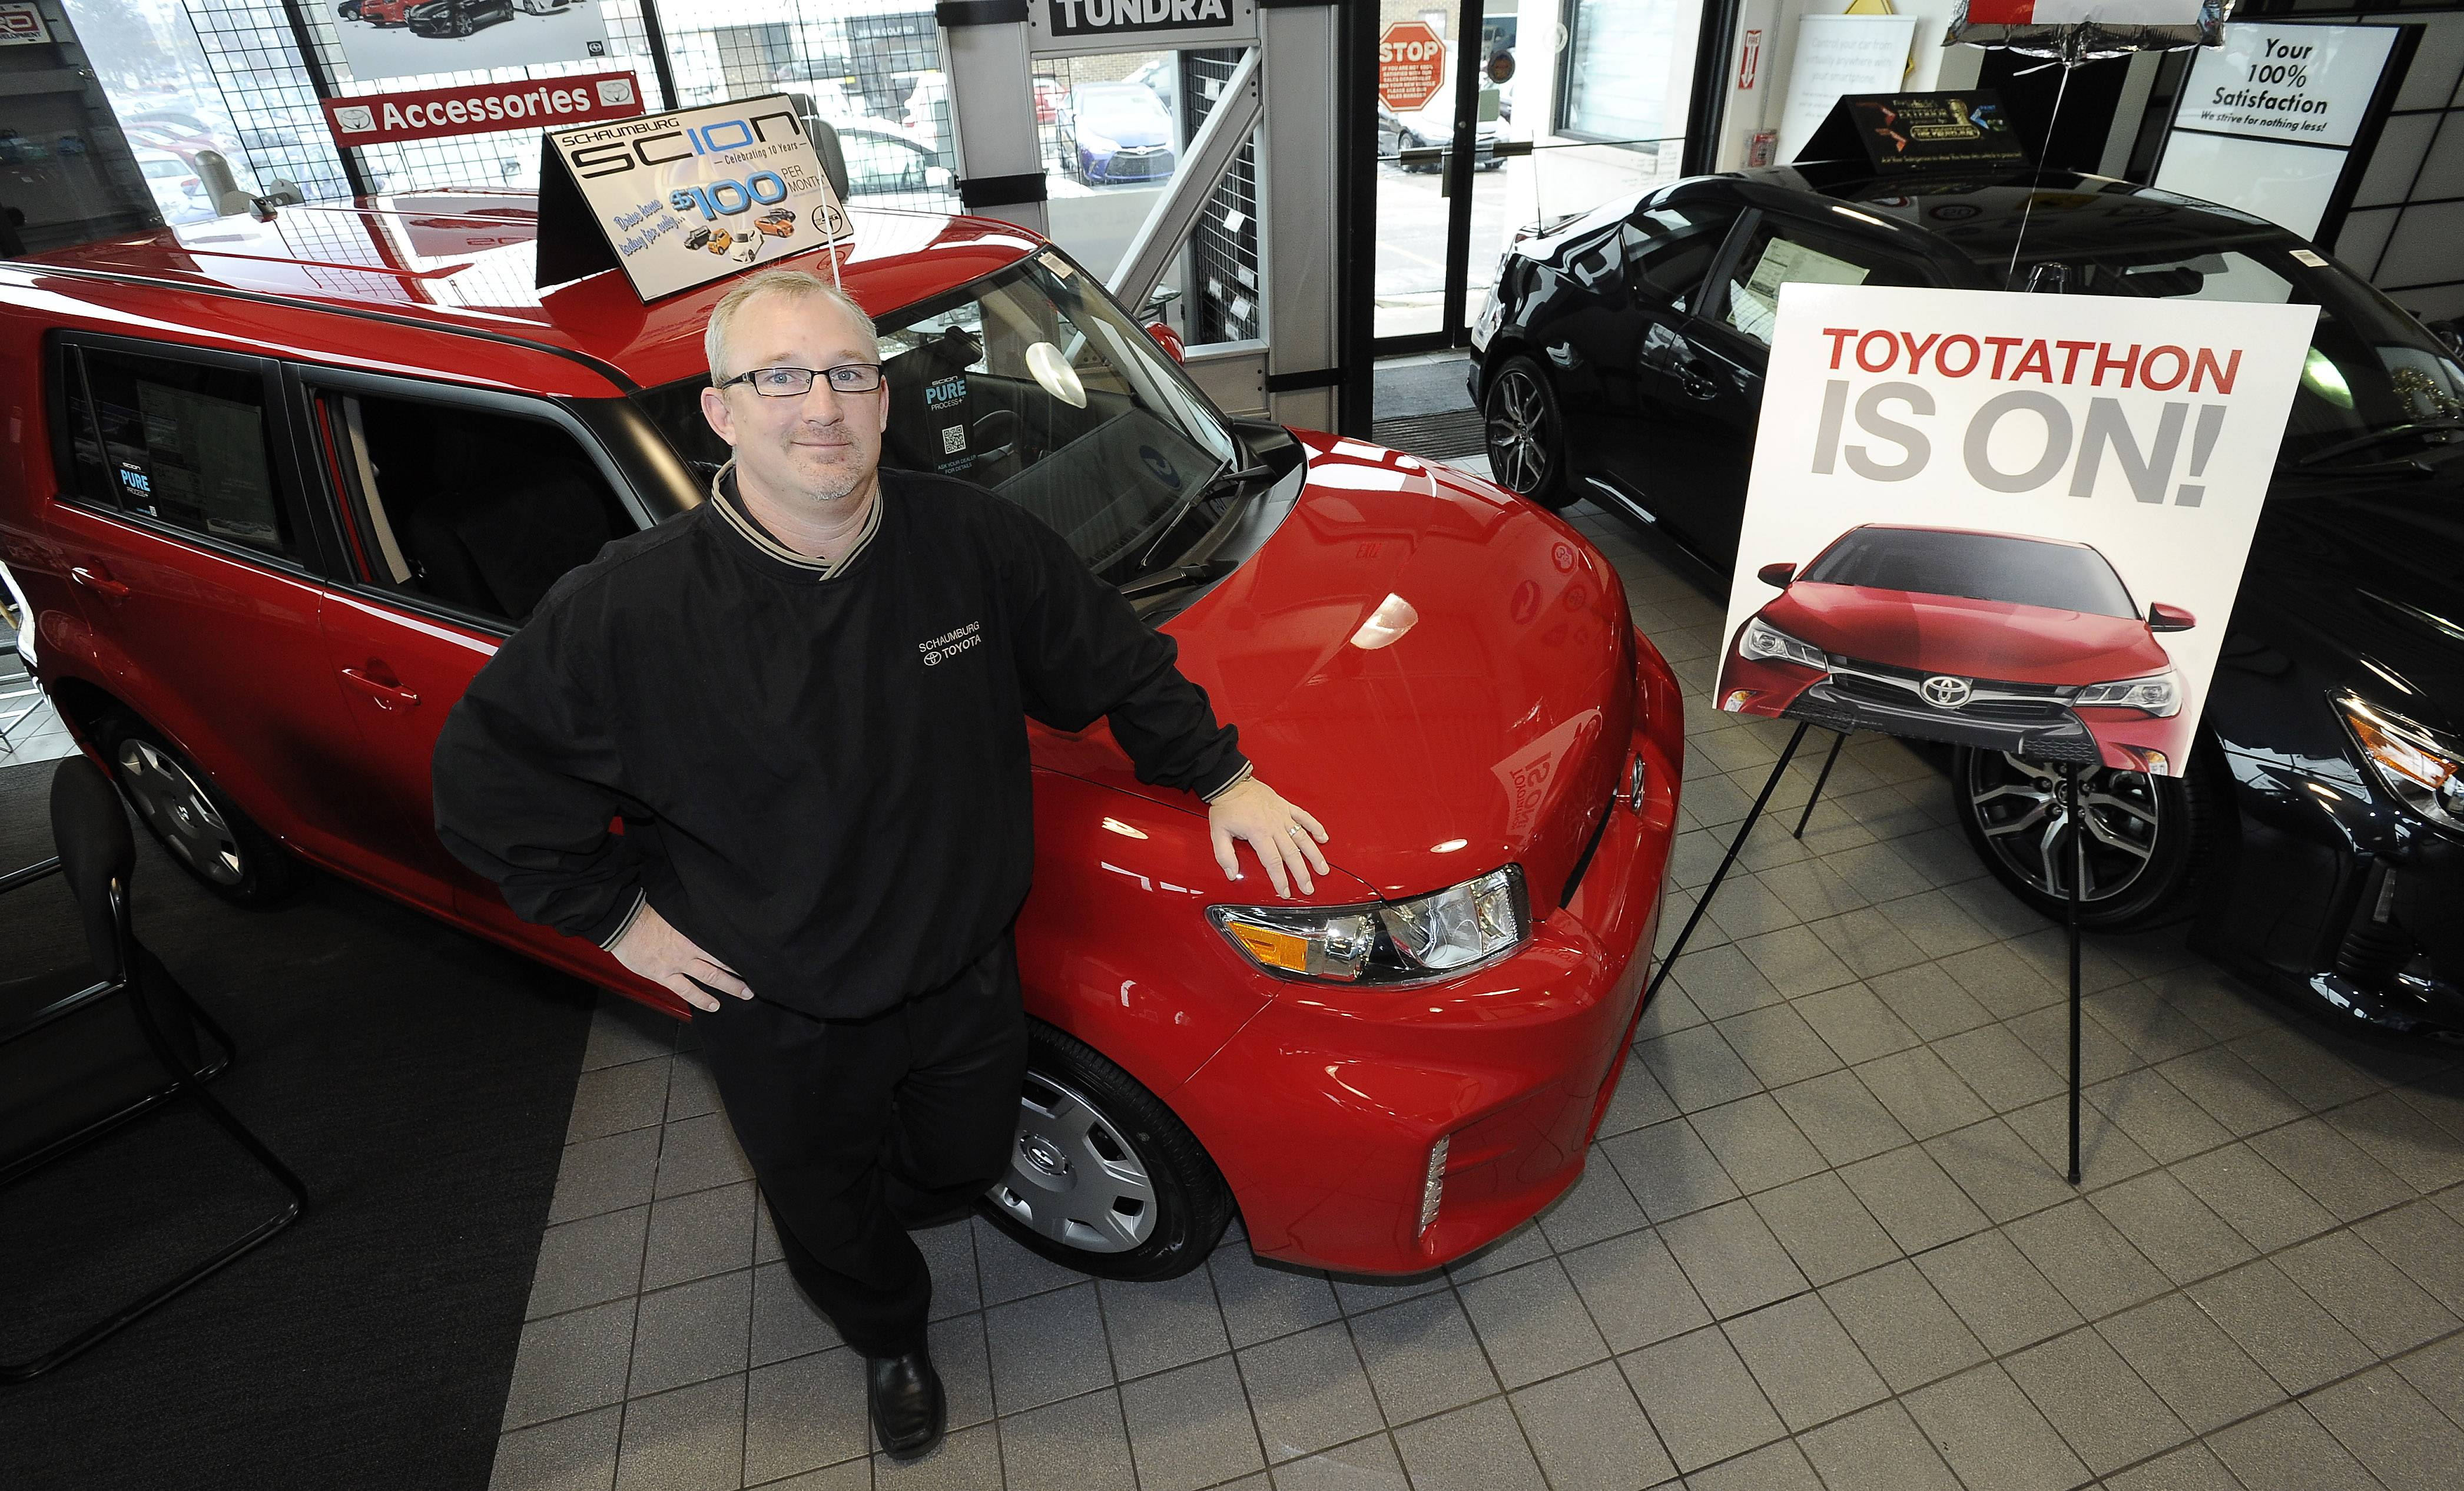 Scion offers five models with a modern appeal that are available during Schaumburg Toyota's annual Toyotathon sales event, said Chris Haley, general manager.